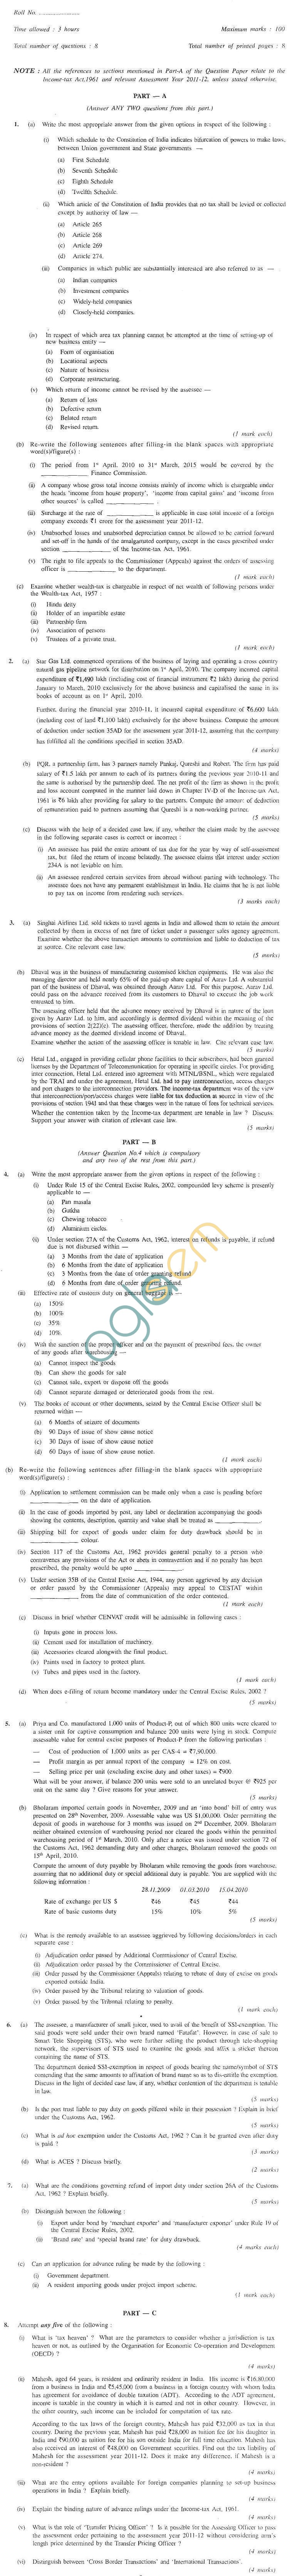 CS Professional Question Papers Jun 2011 - Due Diligence and Corporate Compliance Management Module IV